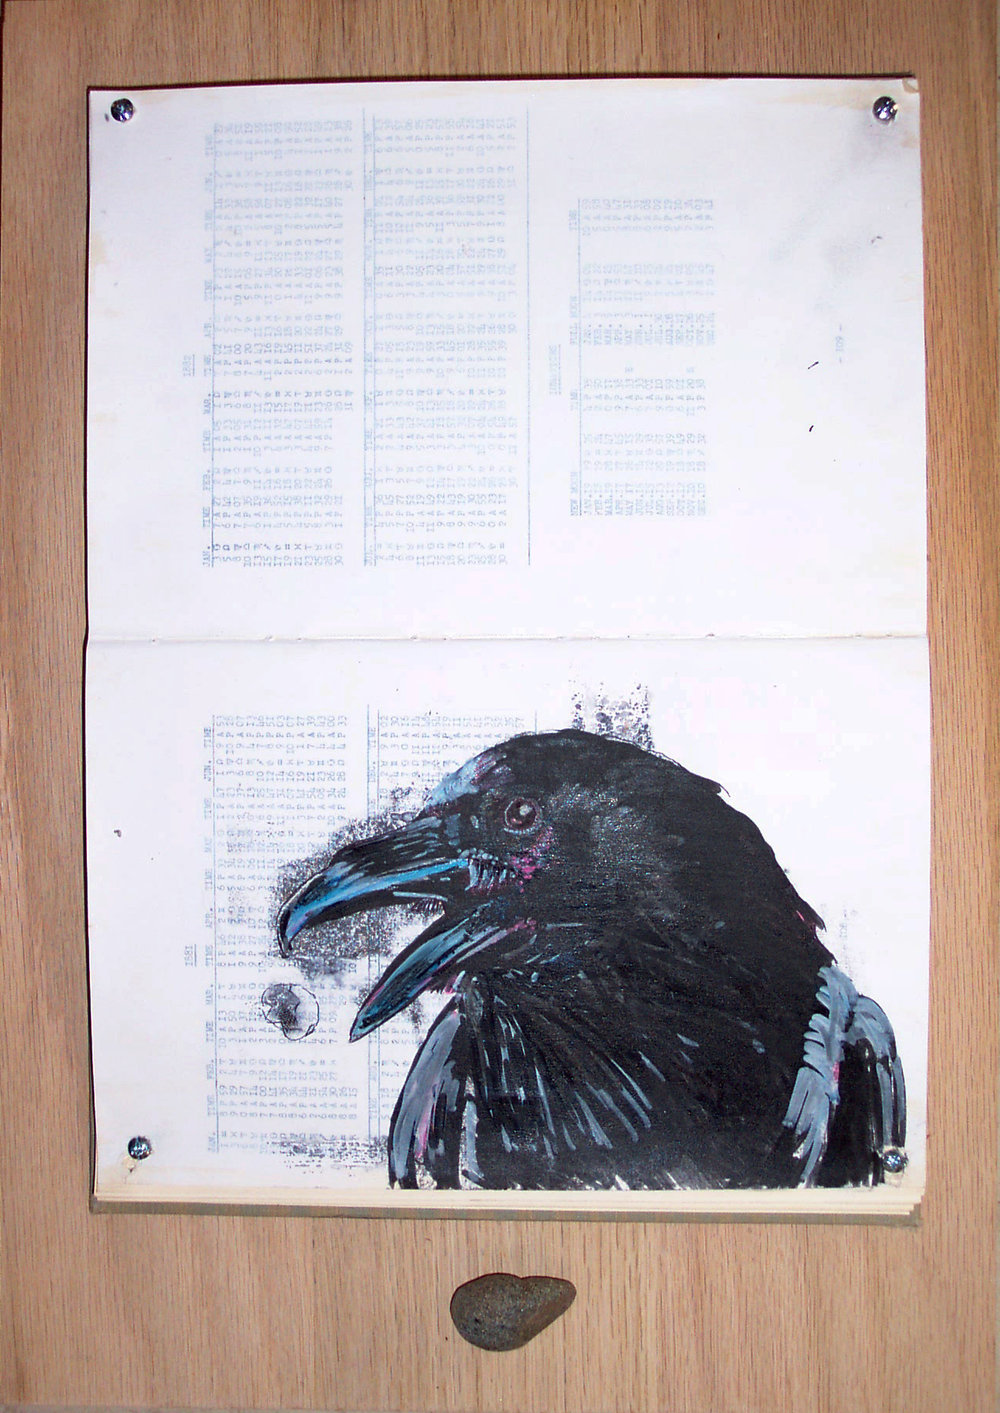 As the Crow Flies (pt. 3). 2008. Altered book, transfer print, oil paint, gesso, screws, oak. -